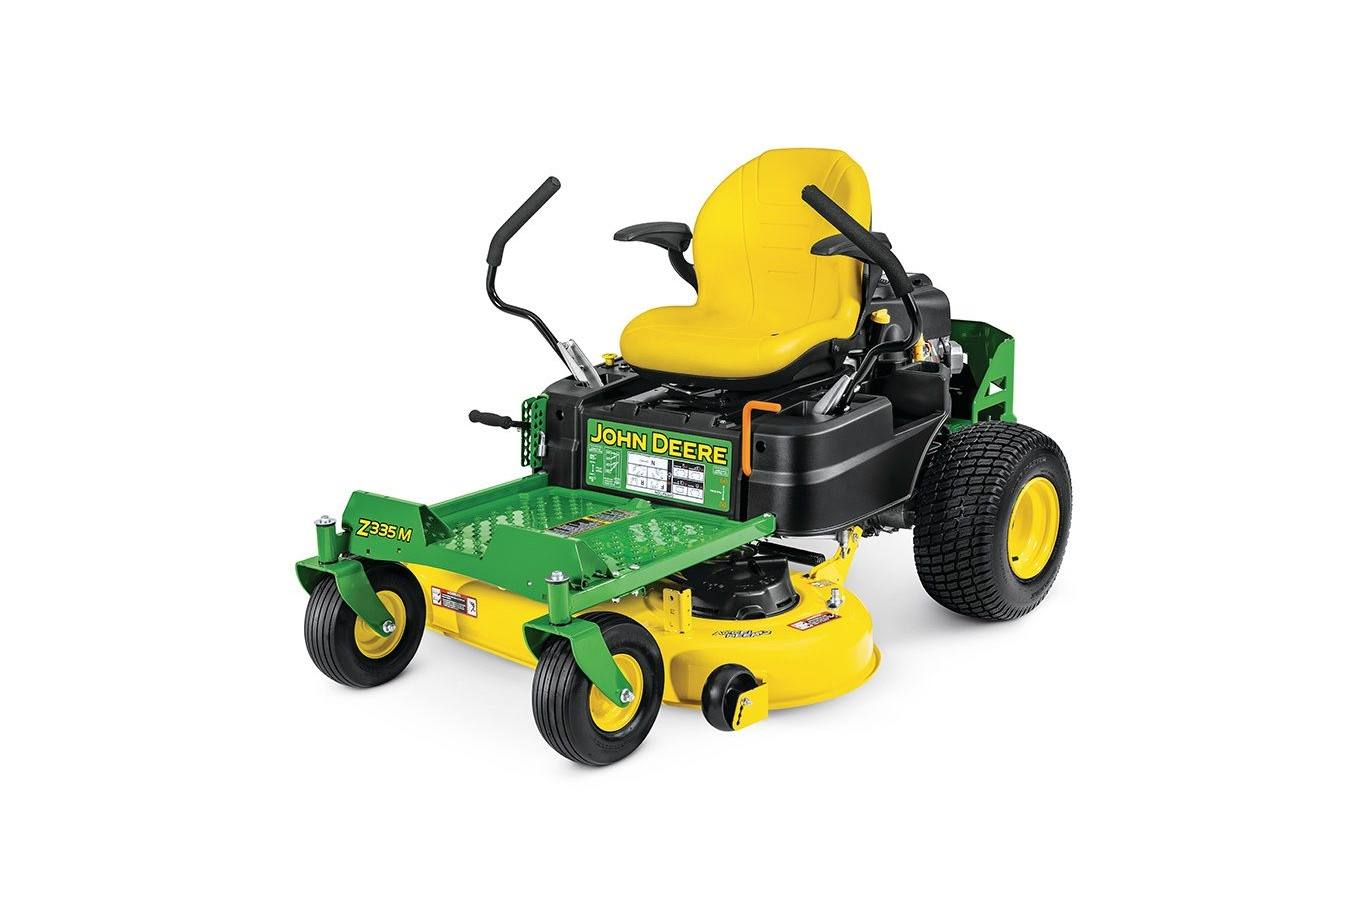 2019 John Deere Z335M with 42-inch Deck